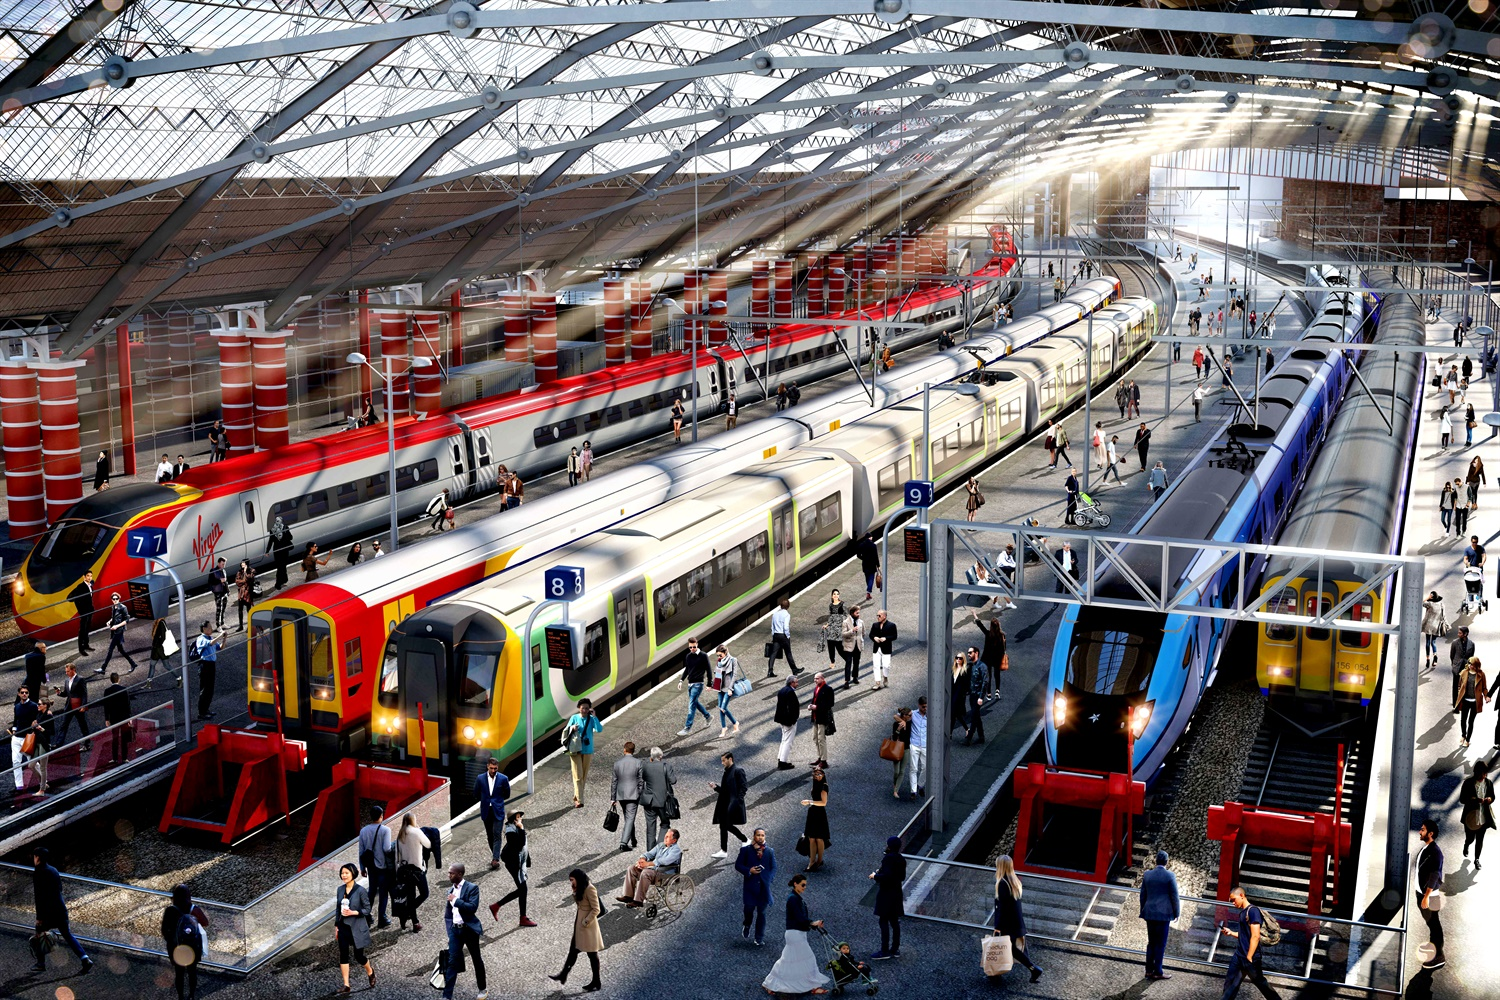 The first phase of Liverpool Lime Street's major upgrade